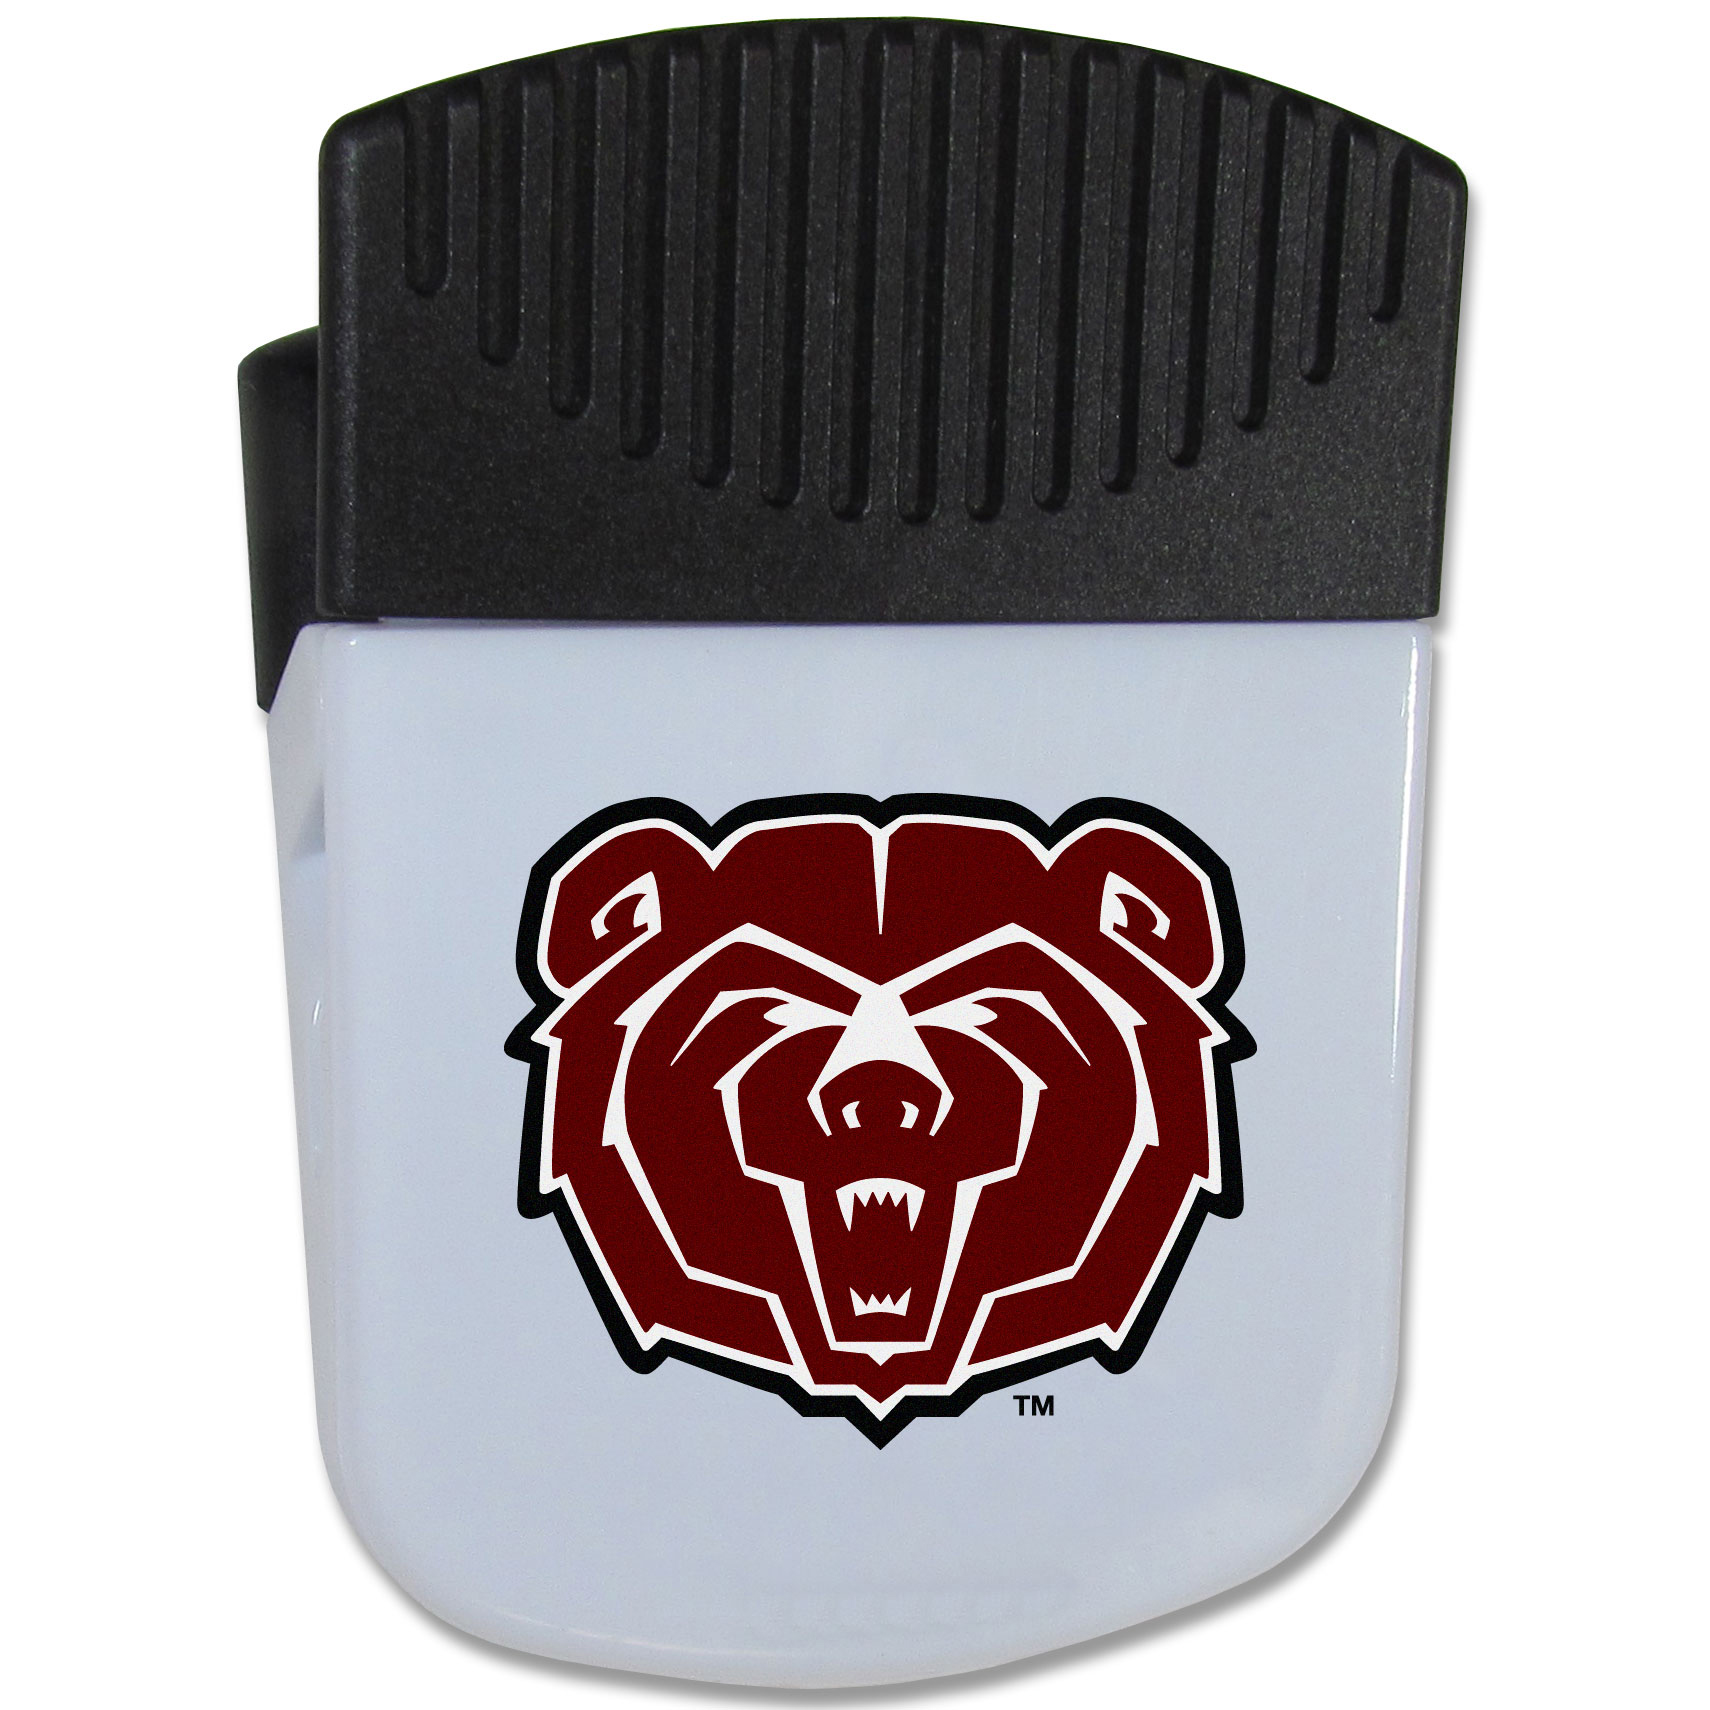 Missouri St. Bears Chip Clip Magnet - Use this attractive clip magnet to hold memos, photos or appointment cards on the fridge or take it down keep use it to clip bags shut. The magnet features a silk screened Missouri St. Bears logo.